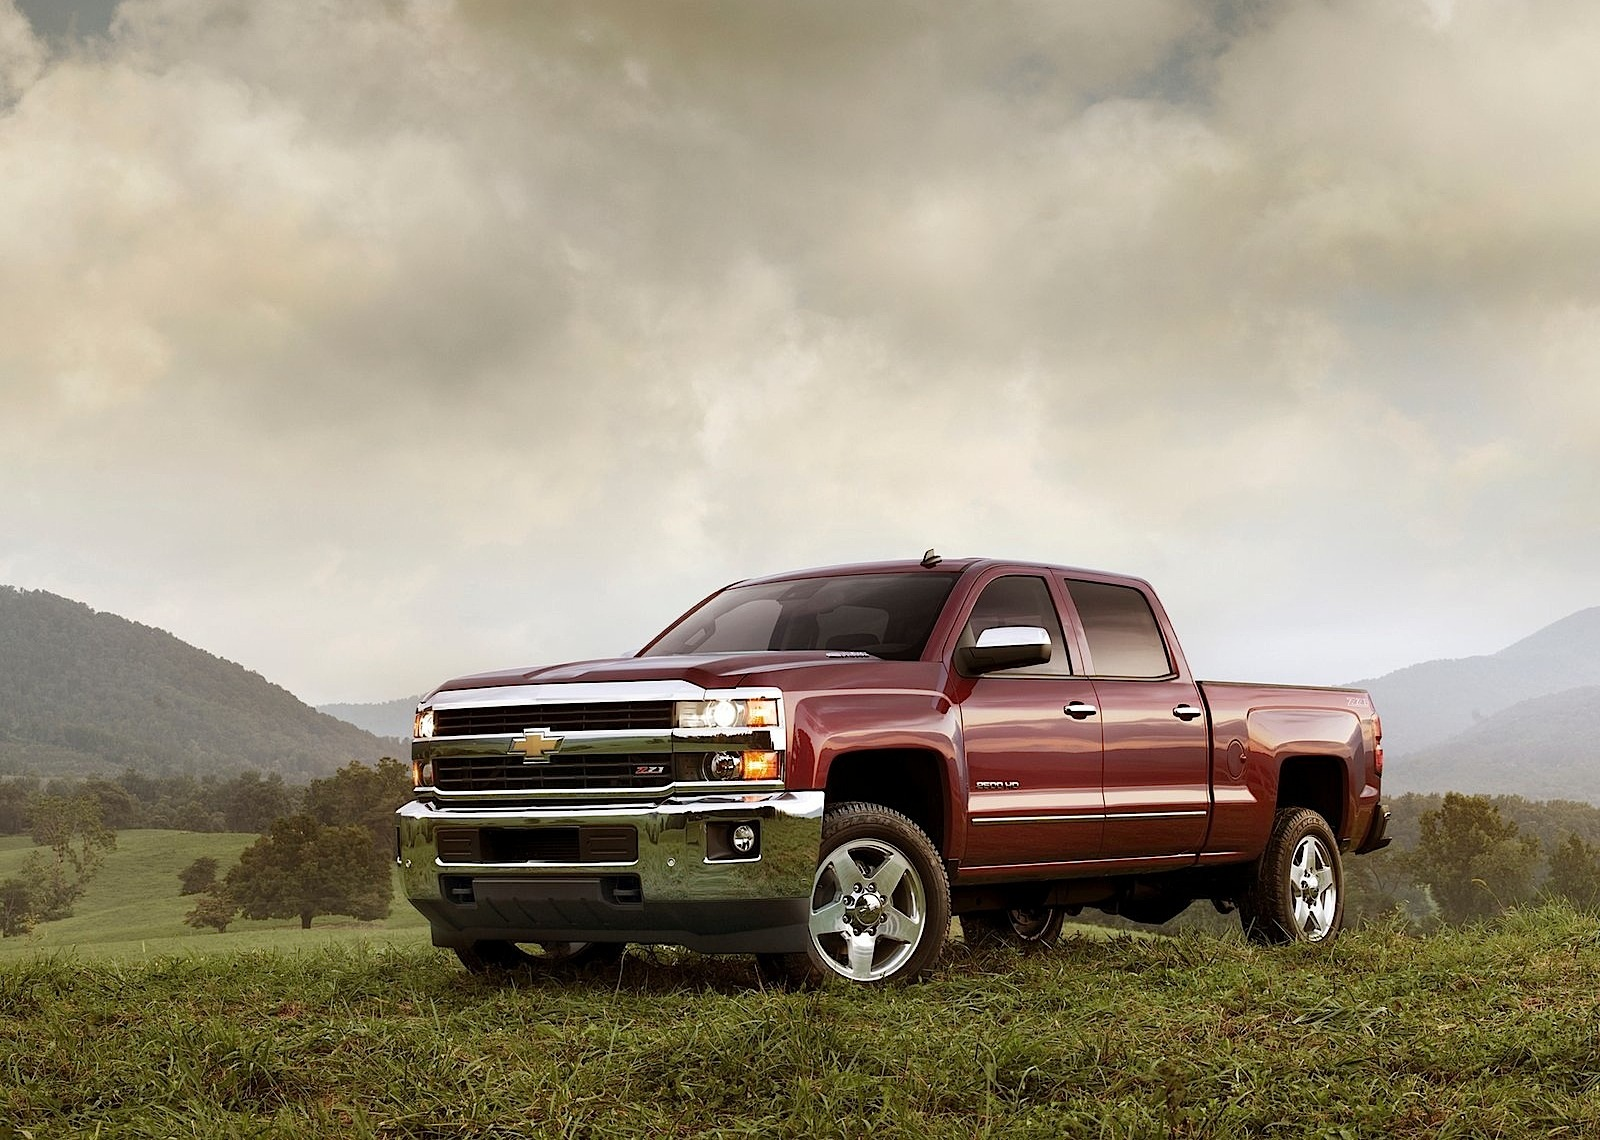 CHEVROLET Silverado 2500 HD Crew Cab specs & photos - 2013, 2014, 2015, 2016, 2017, 2018 ...